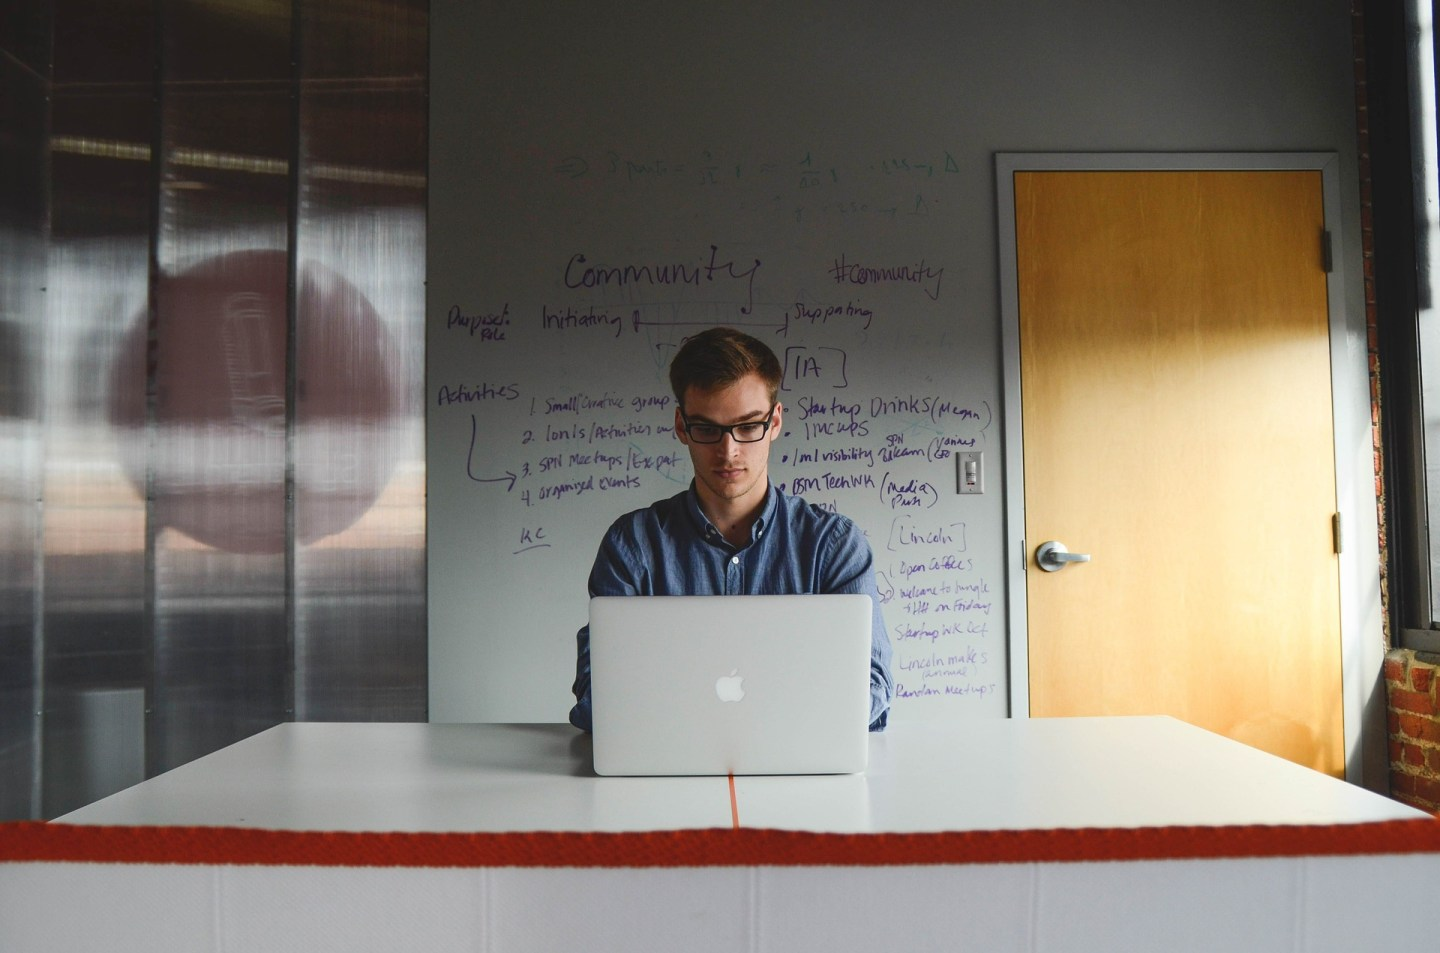 Lessons Learned as an Entrepreneur | Kopf Consulting